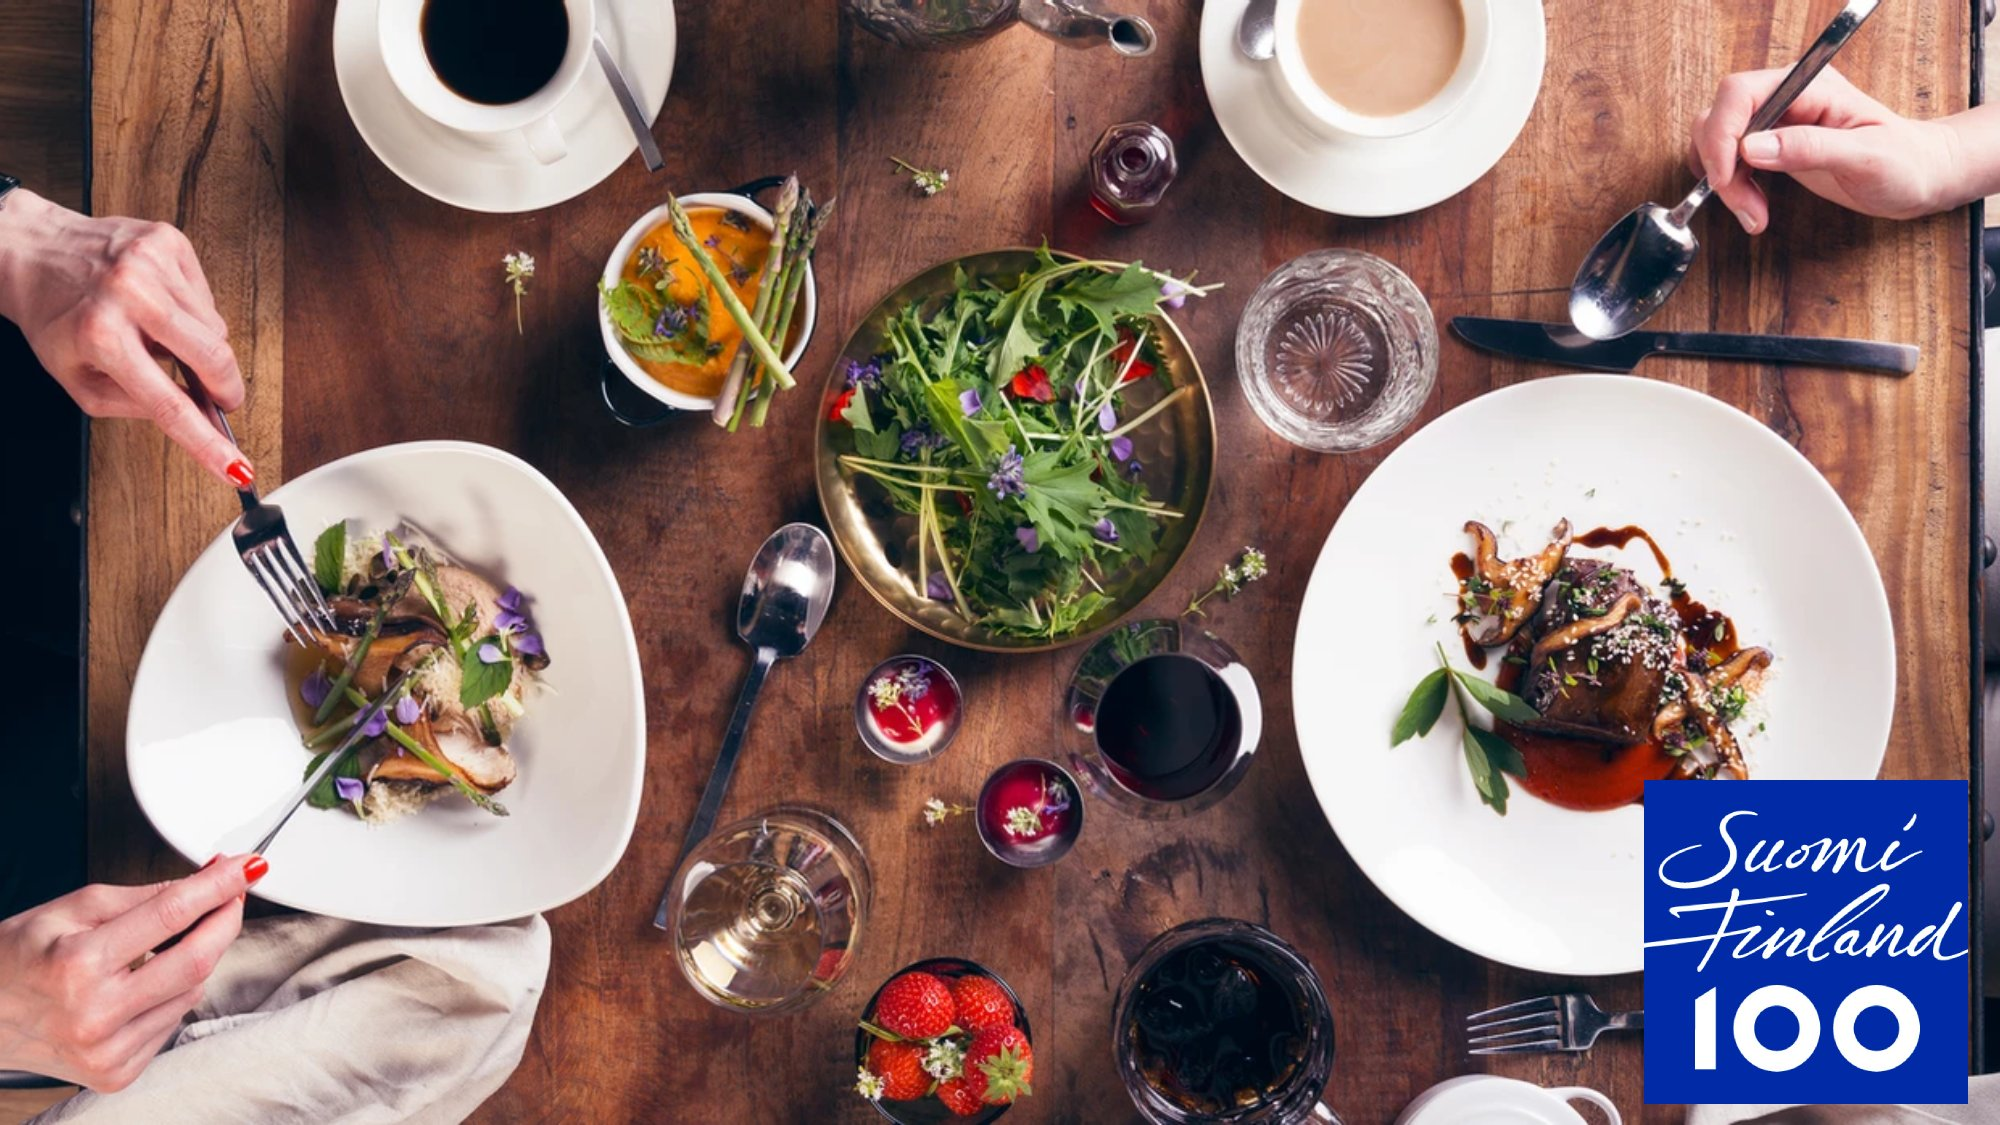 Wild herbs and berries are two key ingredients for Kuopio's gastronomic success.